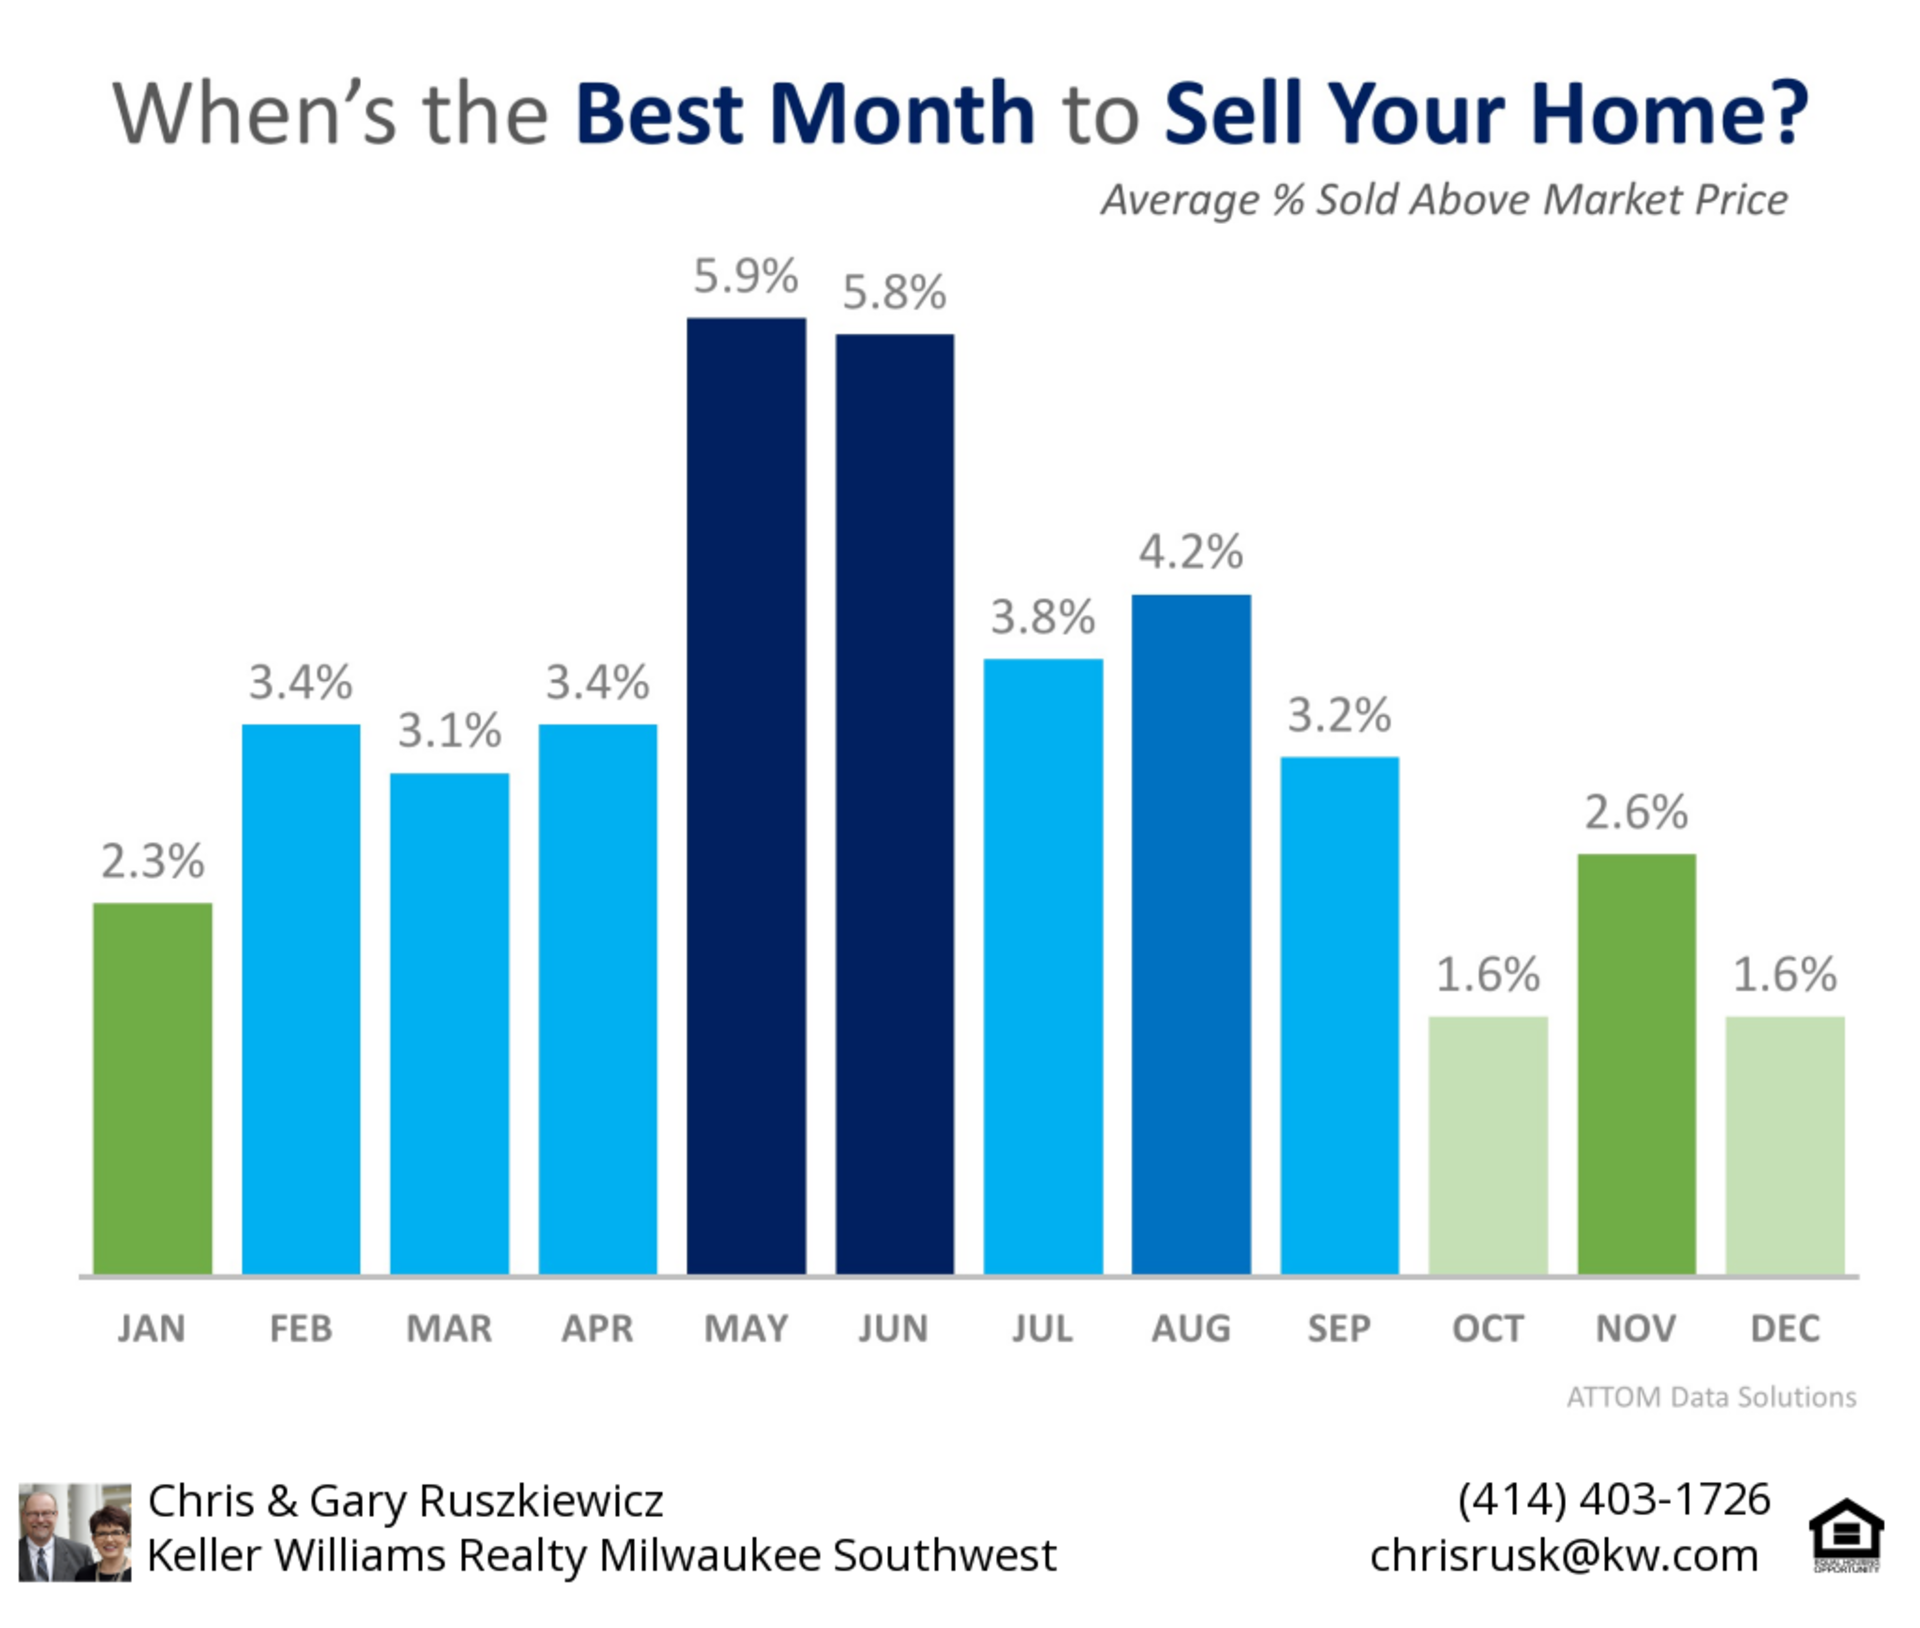 Data Says May is the Best Month to Sell Your Home